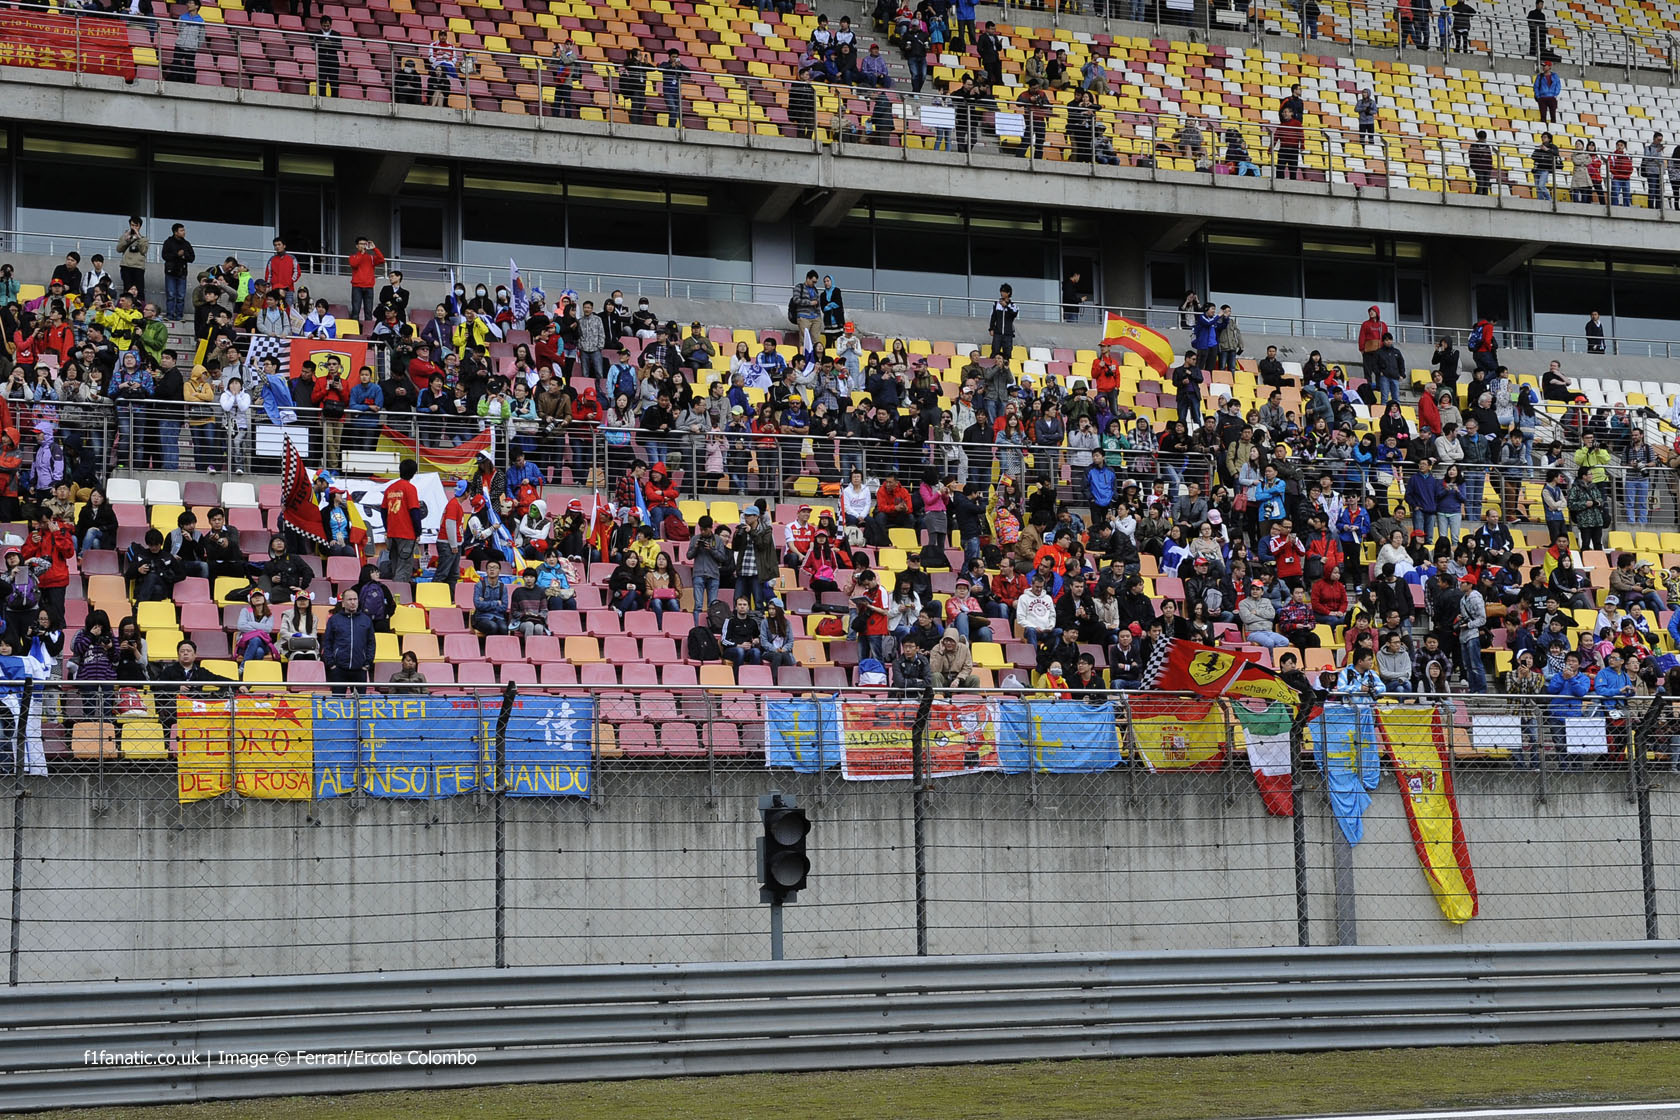 Ferrari fans, Shanghai International Circuit, 2014